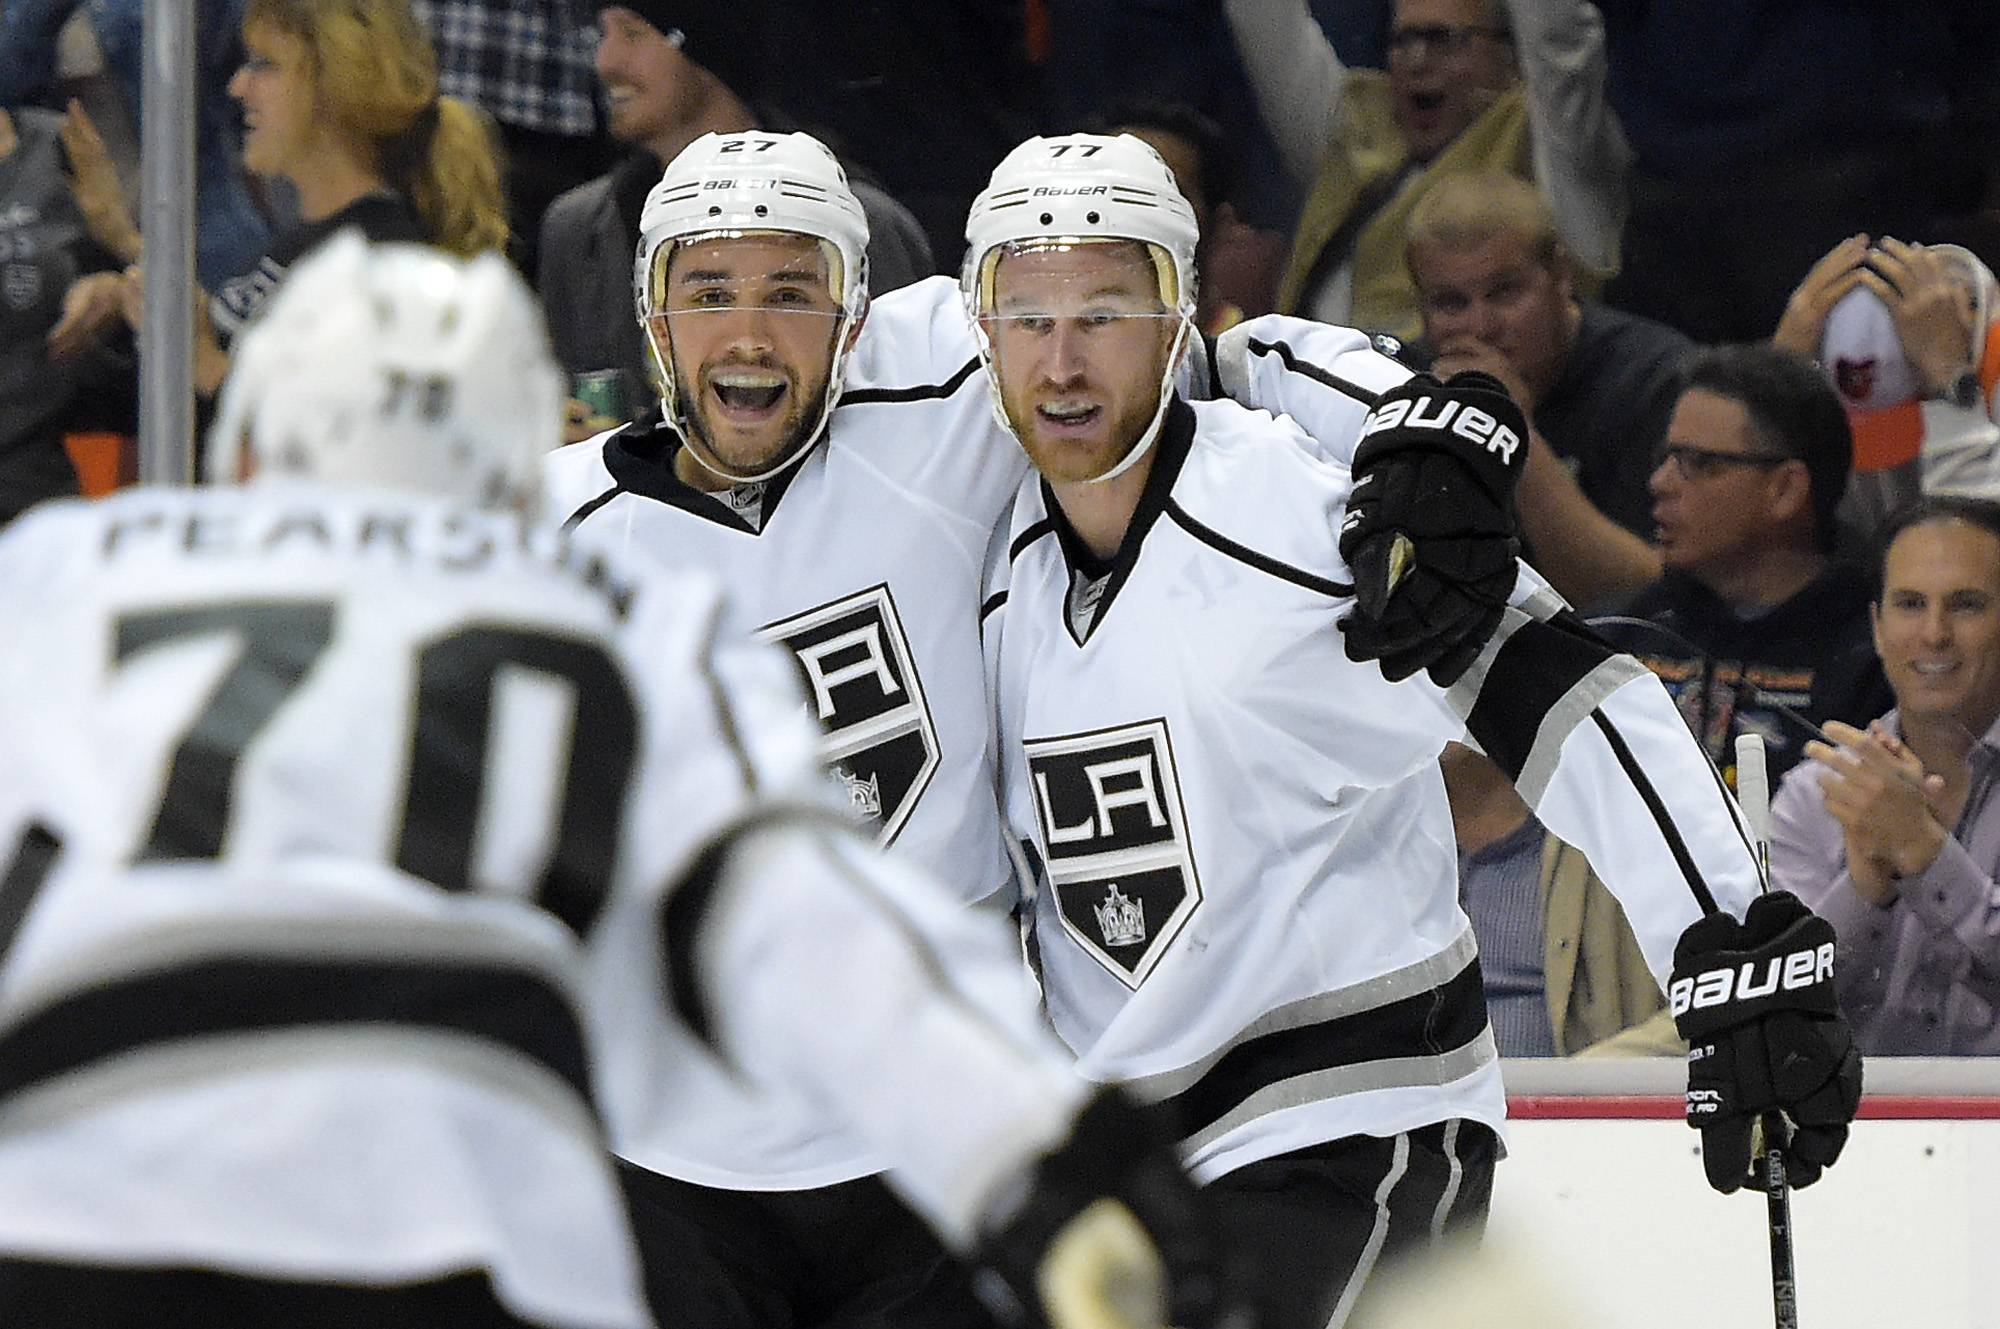 Los Angeles Kings defenseman Alec Martinez, center, celebrates his goal with left wing Tanner Pearson, left, and center Jeff Carter, right, during the first period in Game 2 of an NHL hockey second-round Stanley Cup playoff series against the Anaheim Ducks, Monday, May 5, 2014, in Anaheim, Calif.